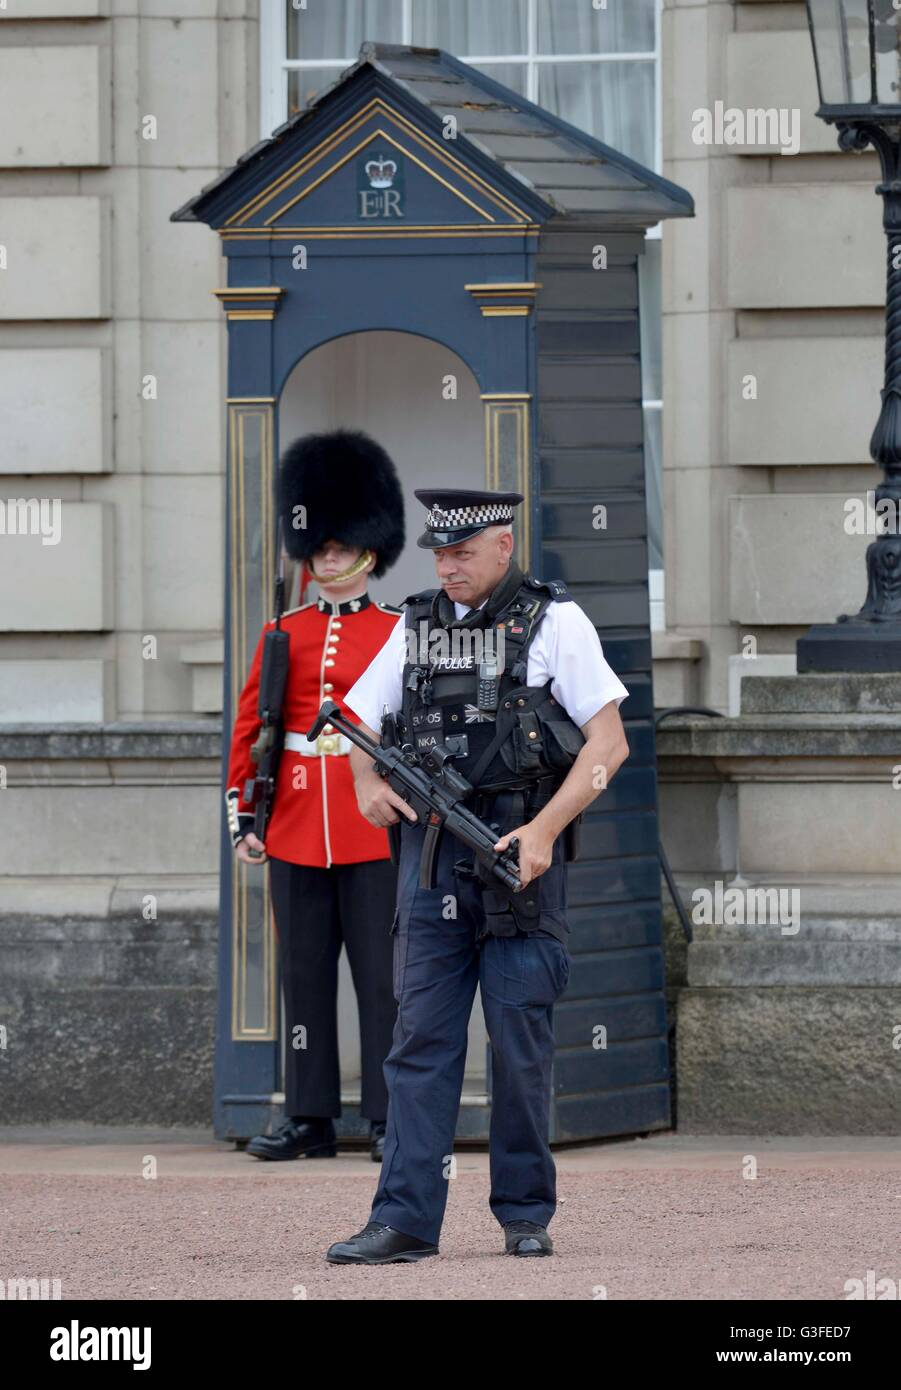 Security Guard Uk High Resolution Stock Photography and Images - Alamy